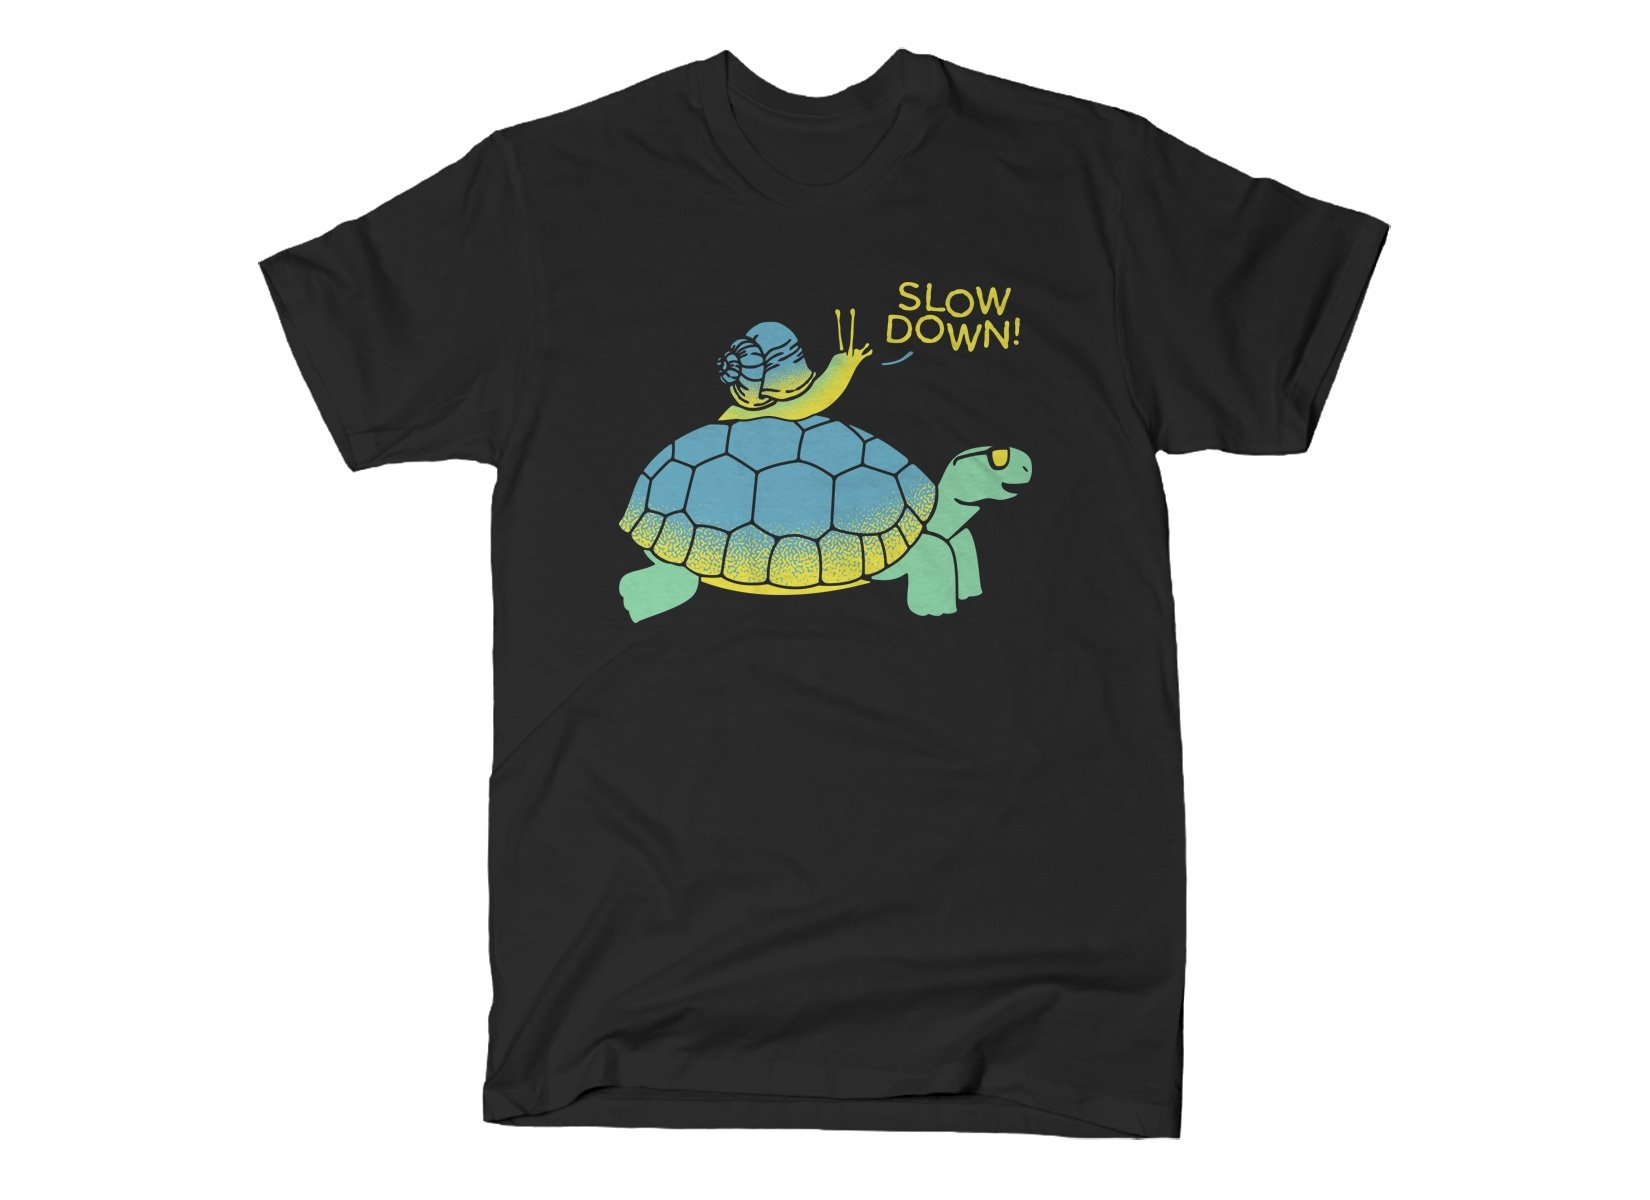 Slow Down! on Mens T-Shirt